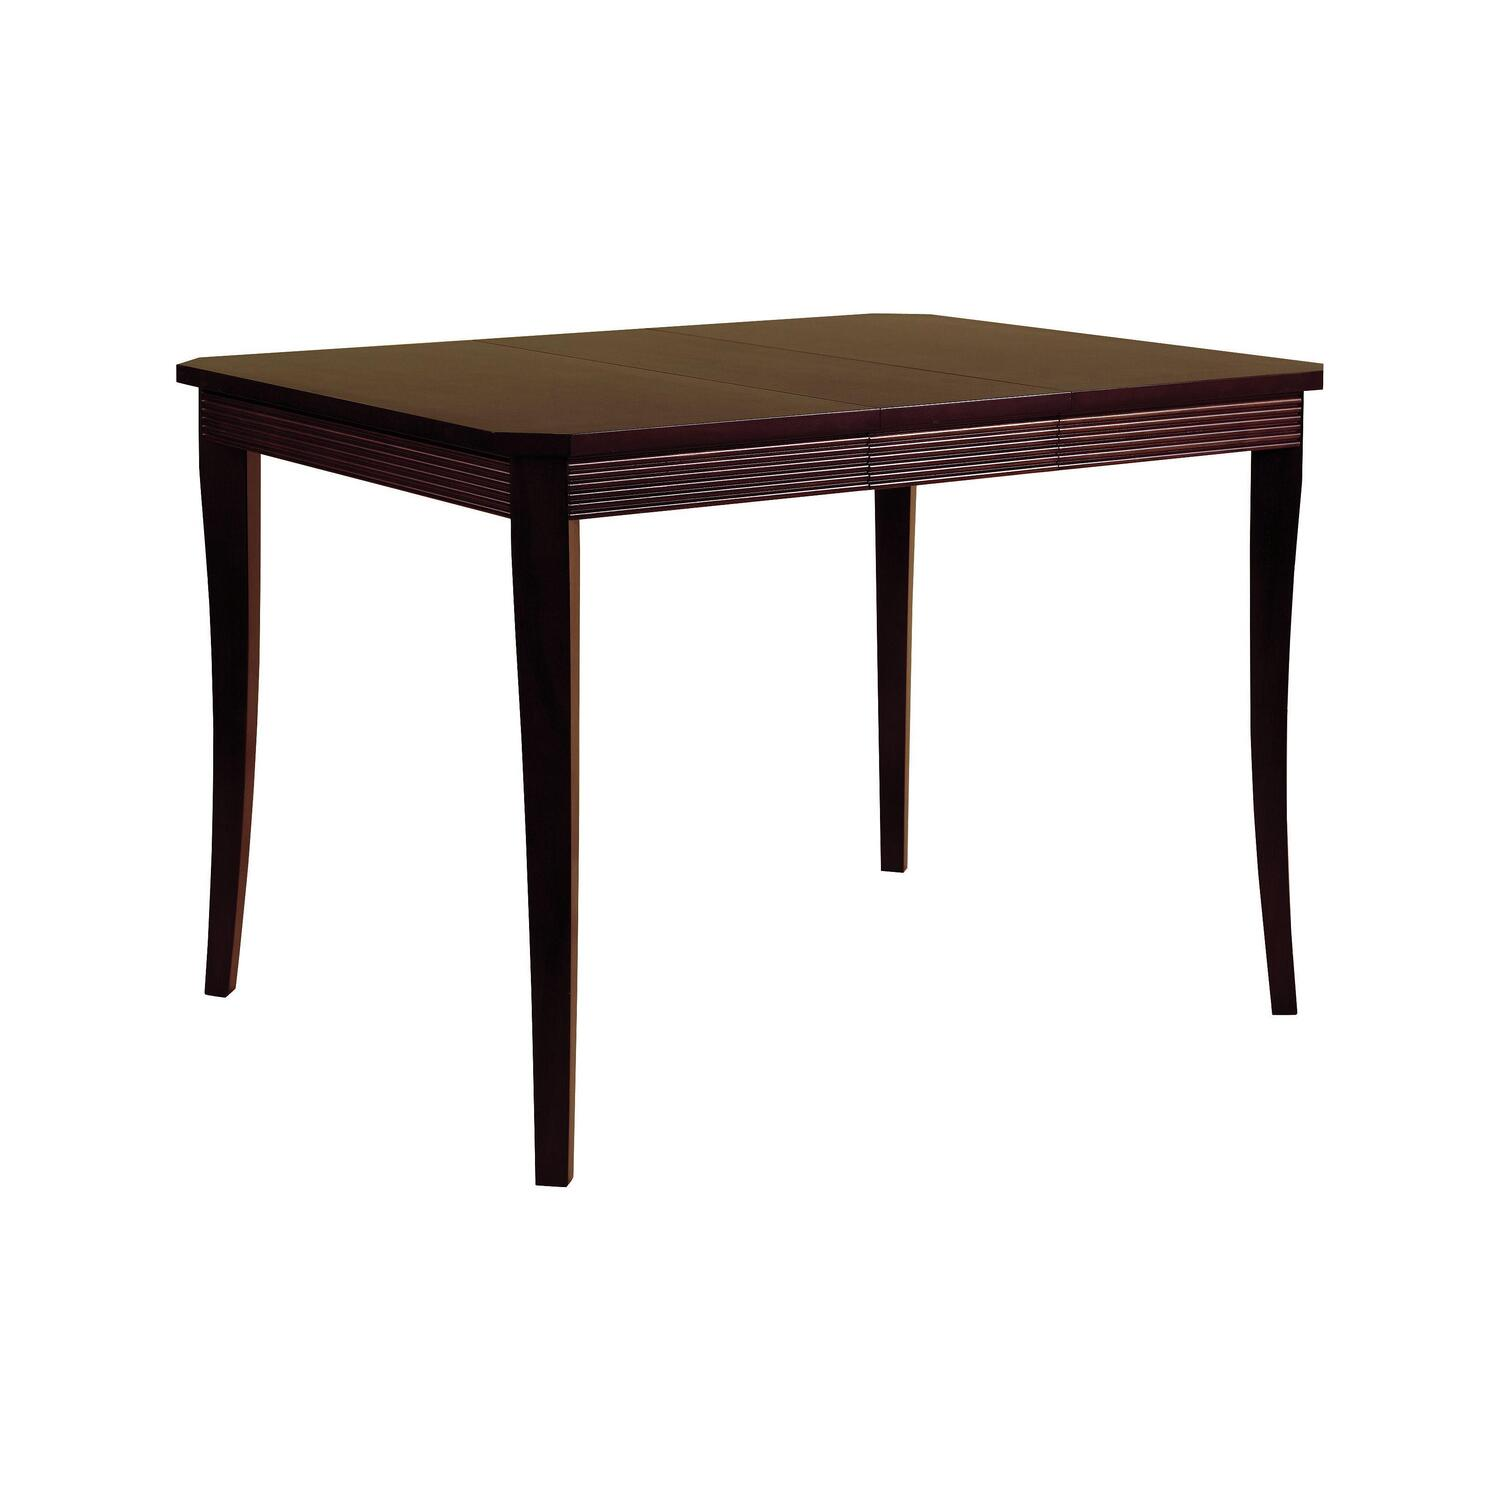 Lane urbana counter height table by oj commerce 754 74 for Table urbana but